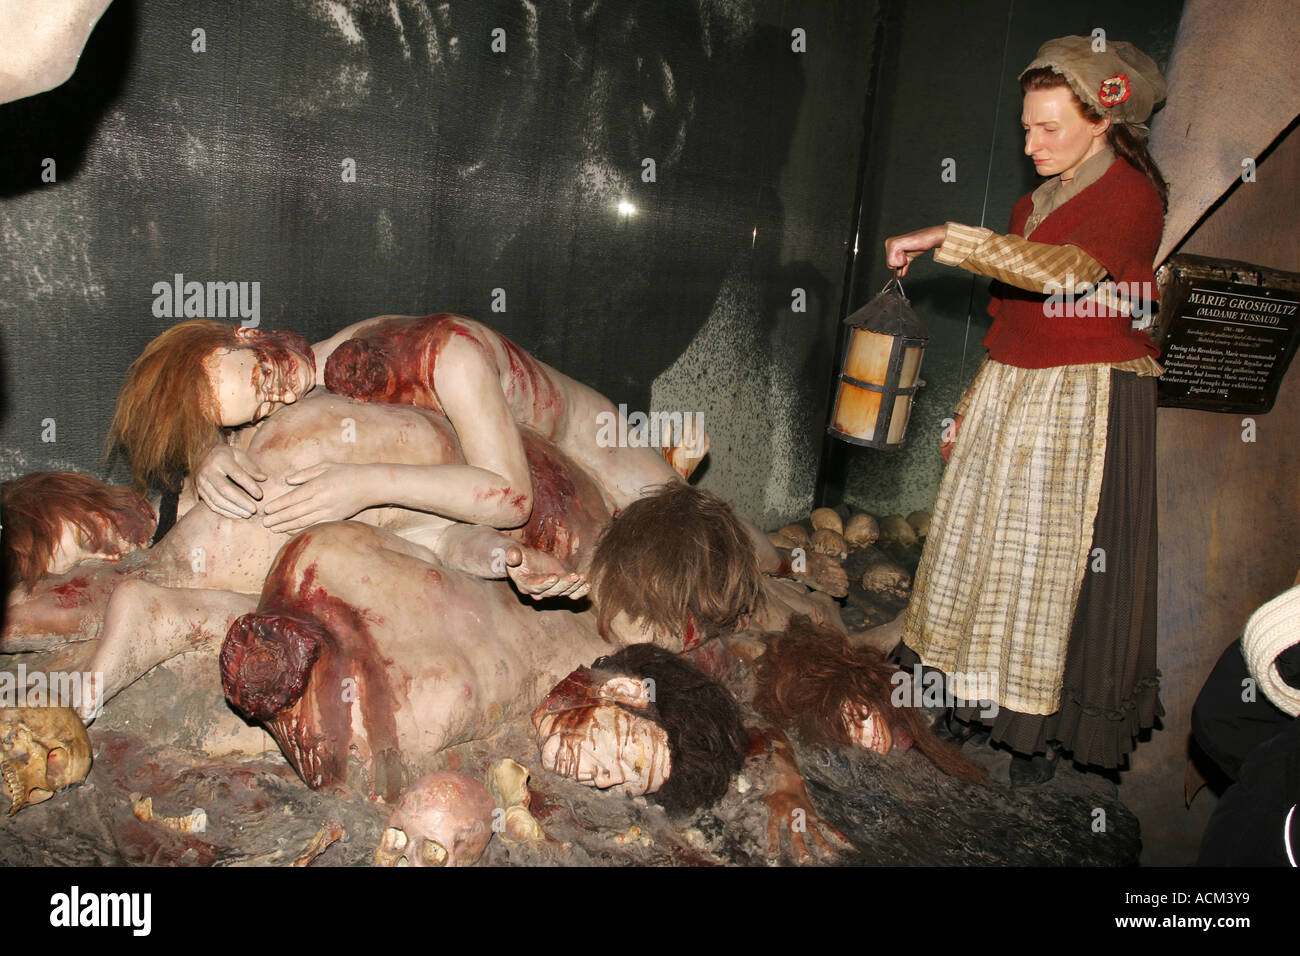 Beheaded people as waxworks replicas at Madame Tussauds London - Stock Image